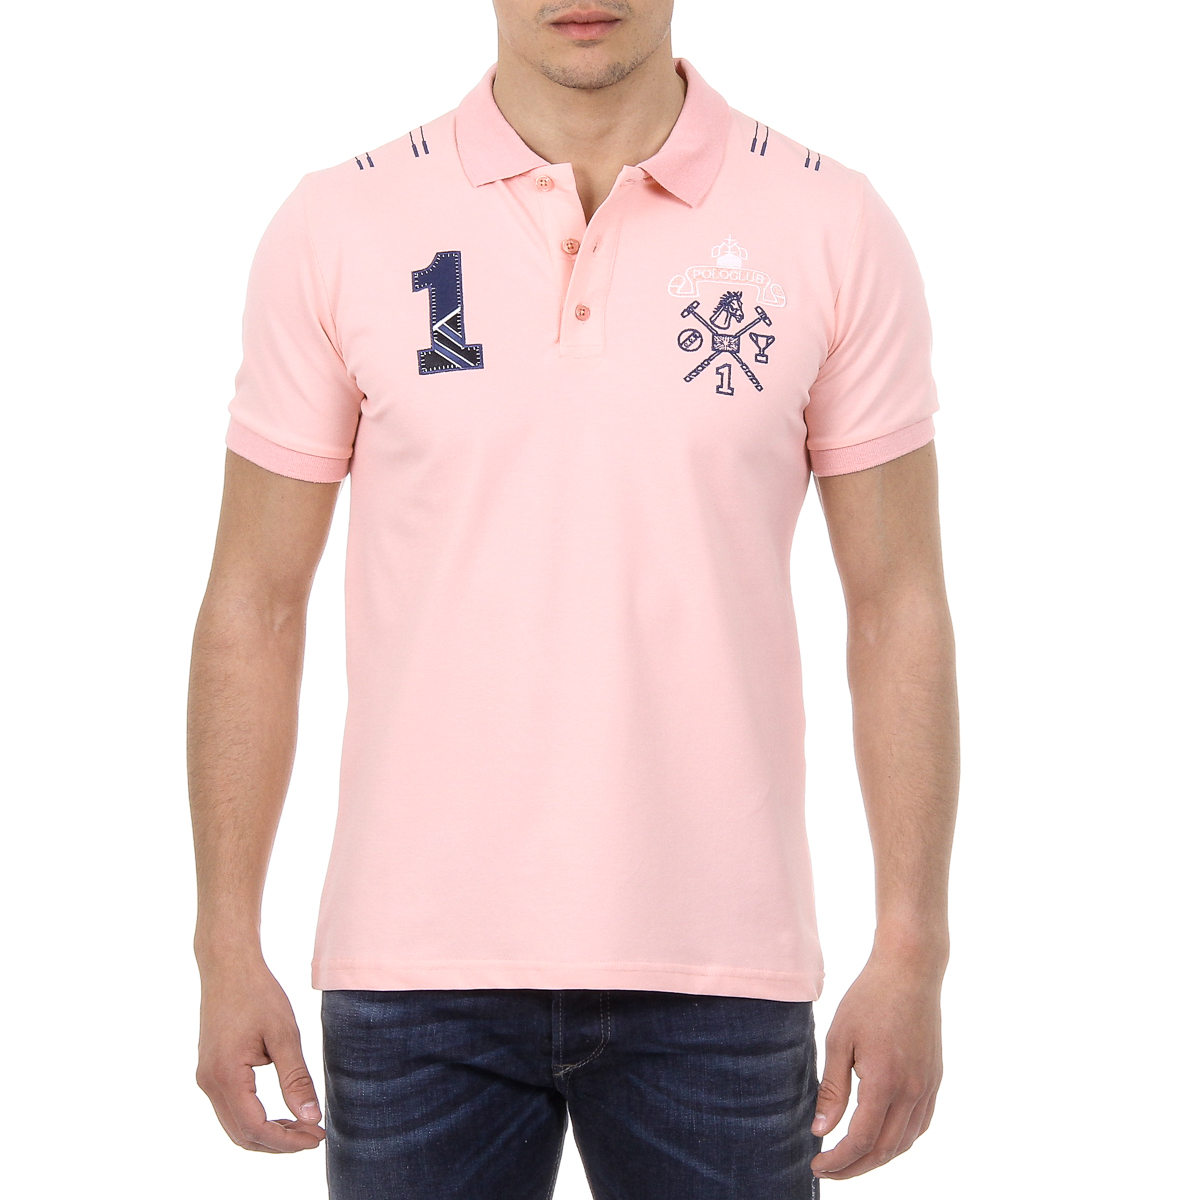 Primary image for Ufford & Suffolk Polo Club Mens Polo Short Sleeves US008 PINK